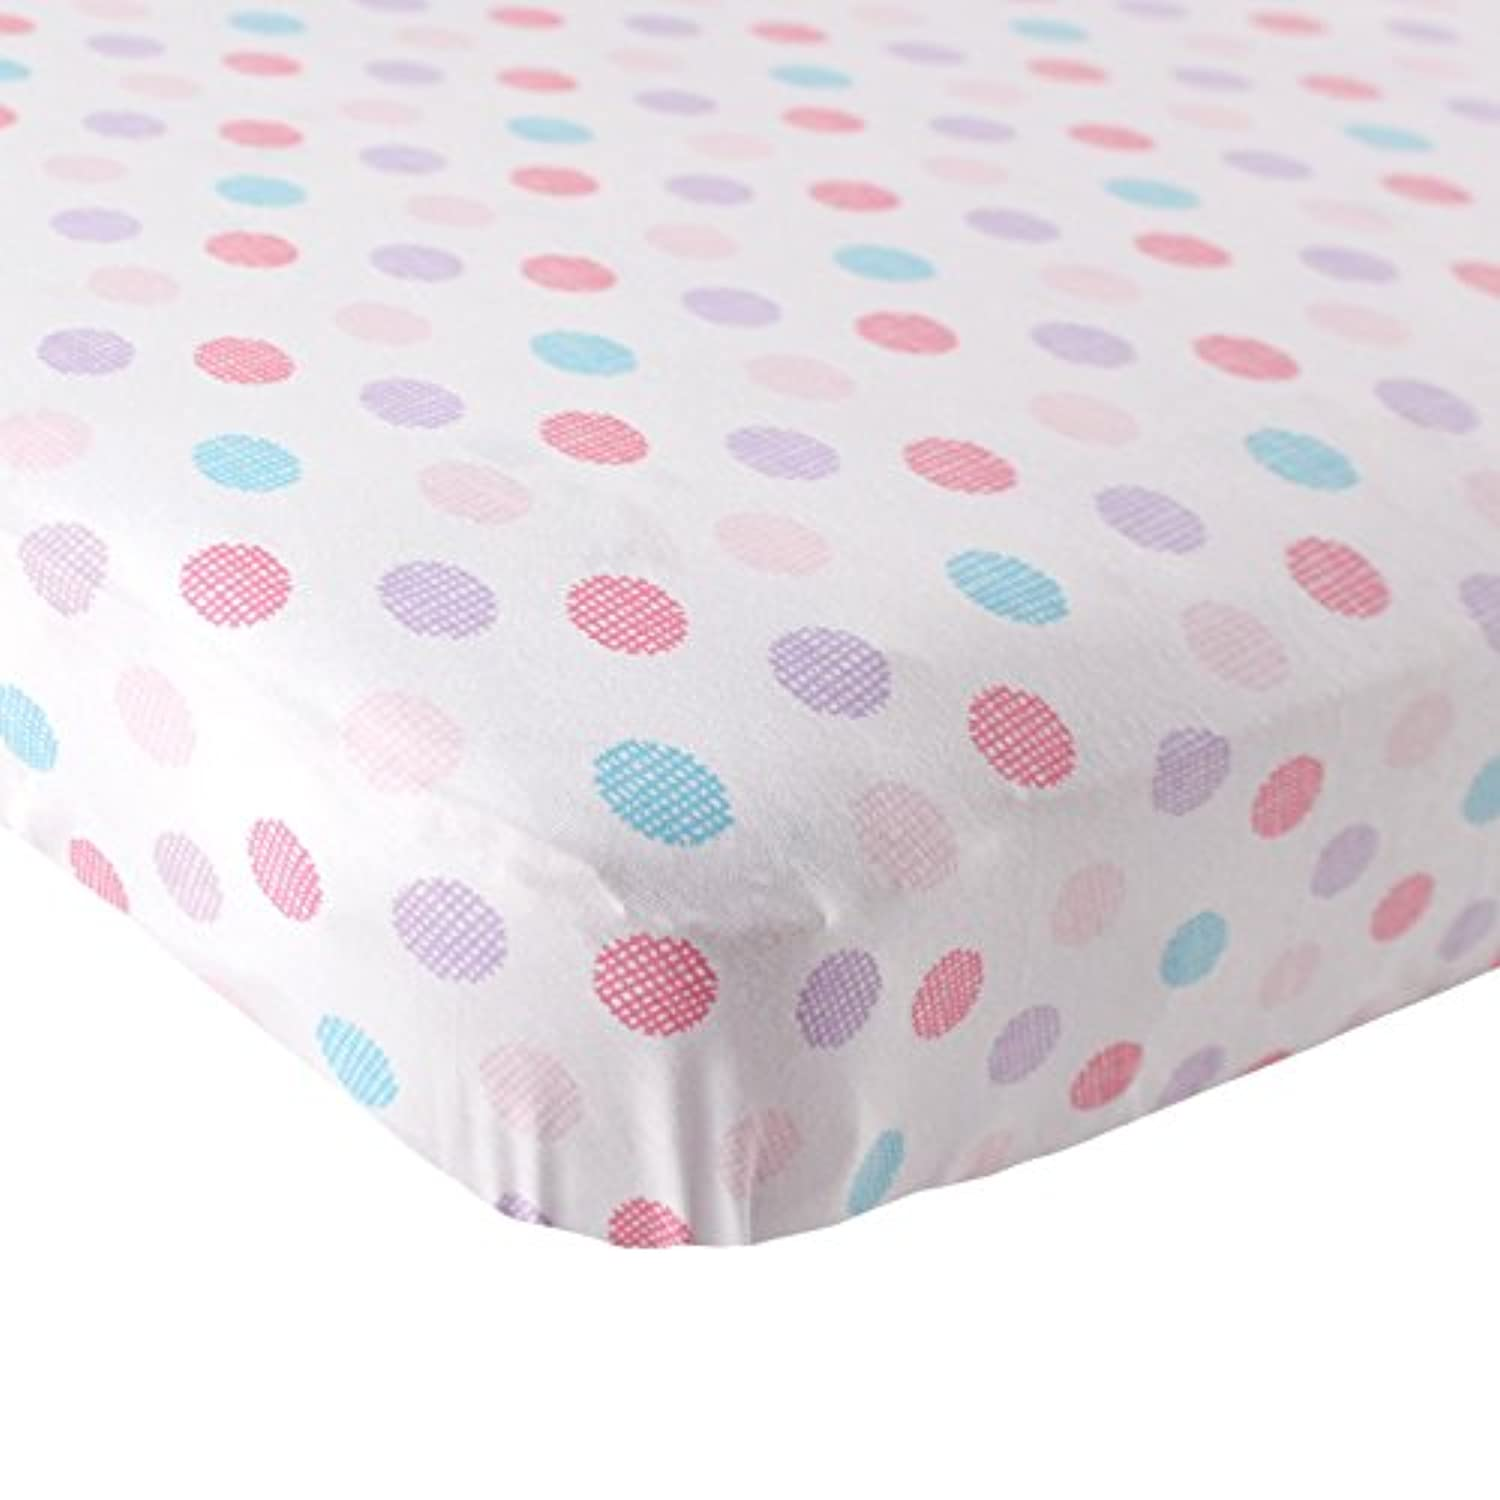 Luvable Friends Fitted Knit Cotton Crib Sheet Crosshatch Dot, Pink by Luvable Friends